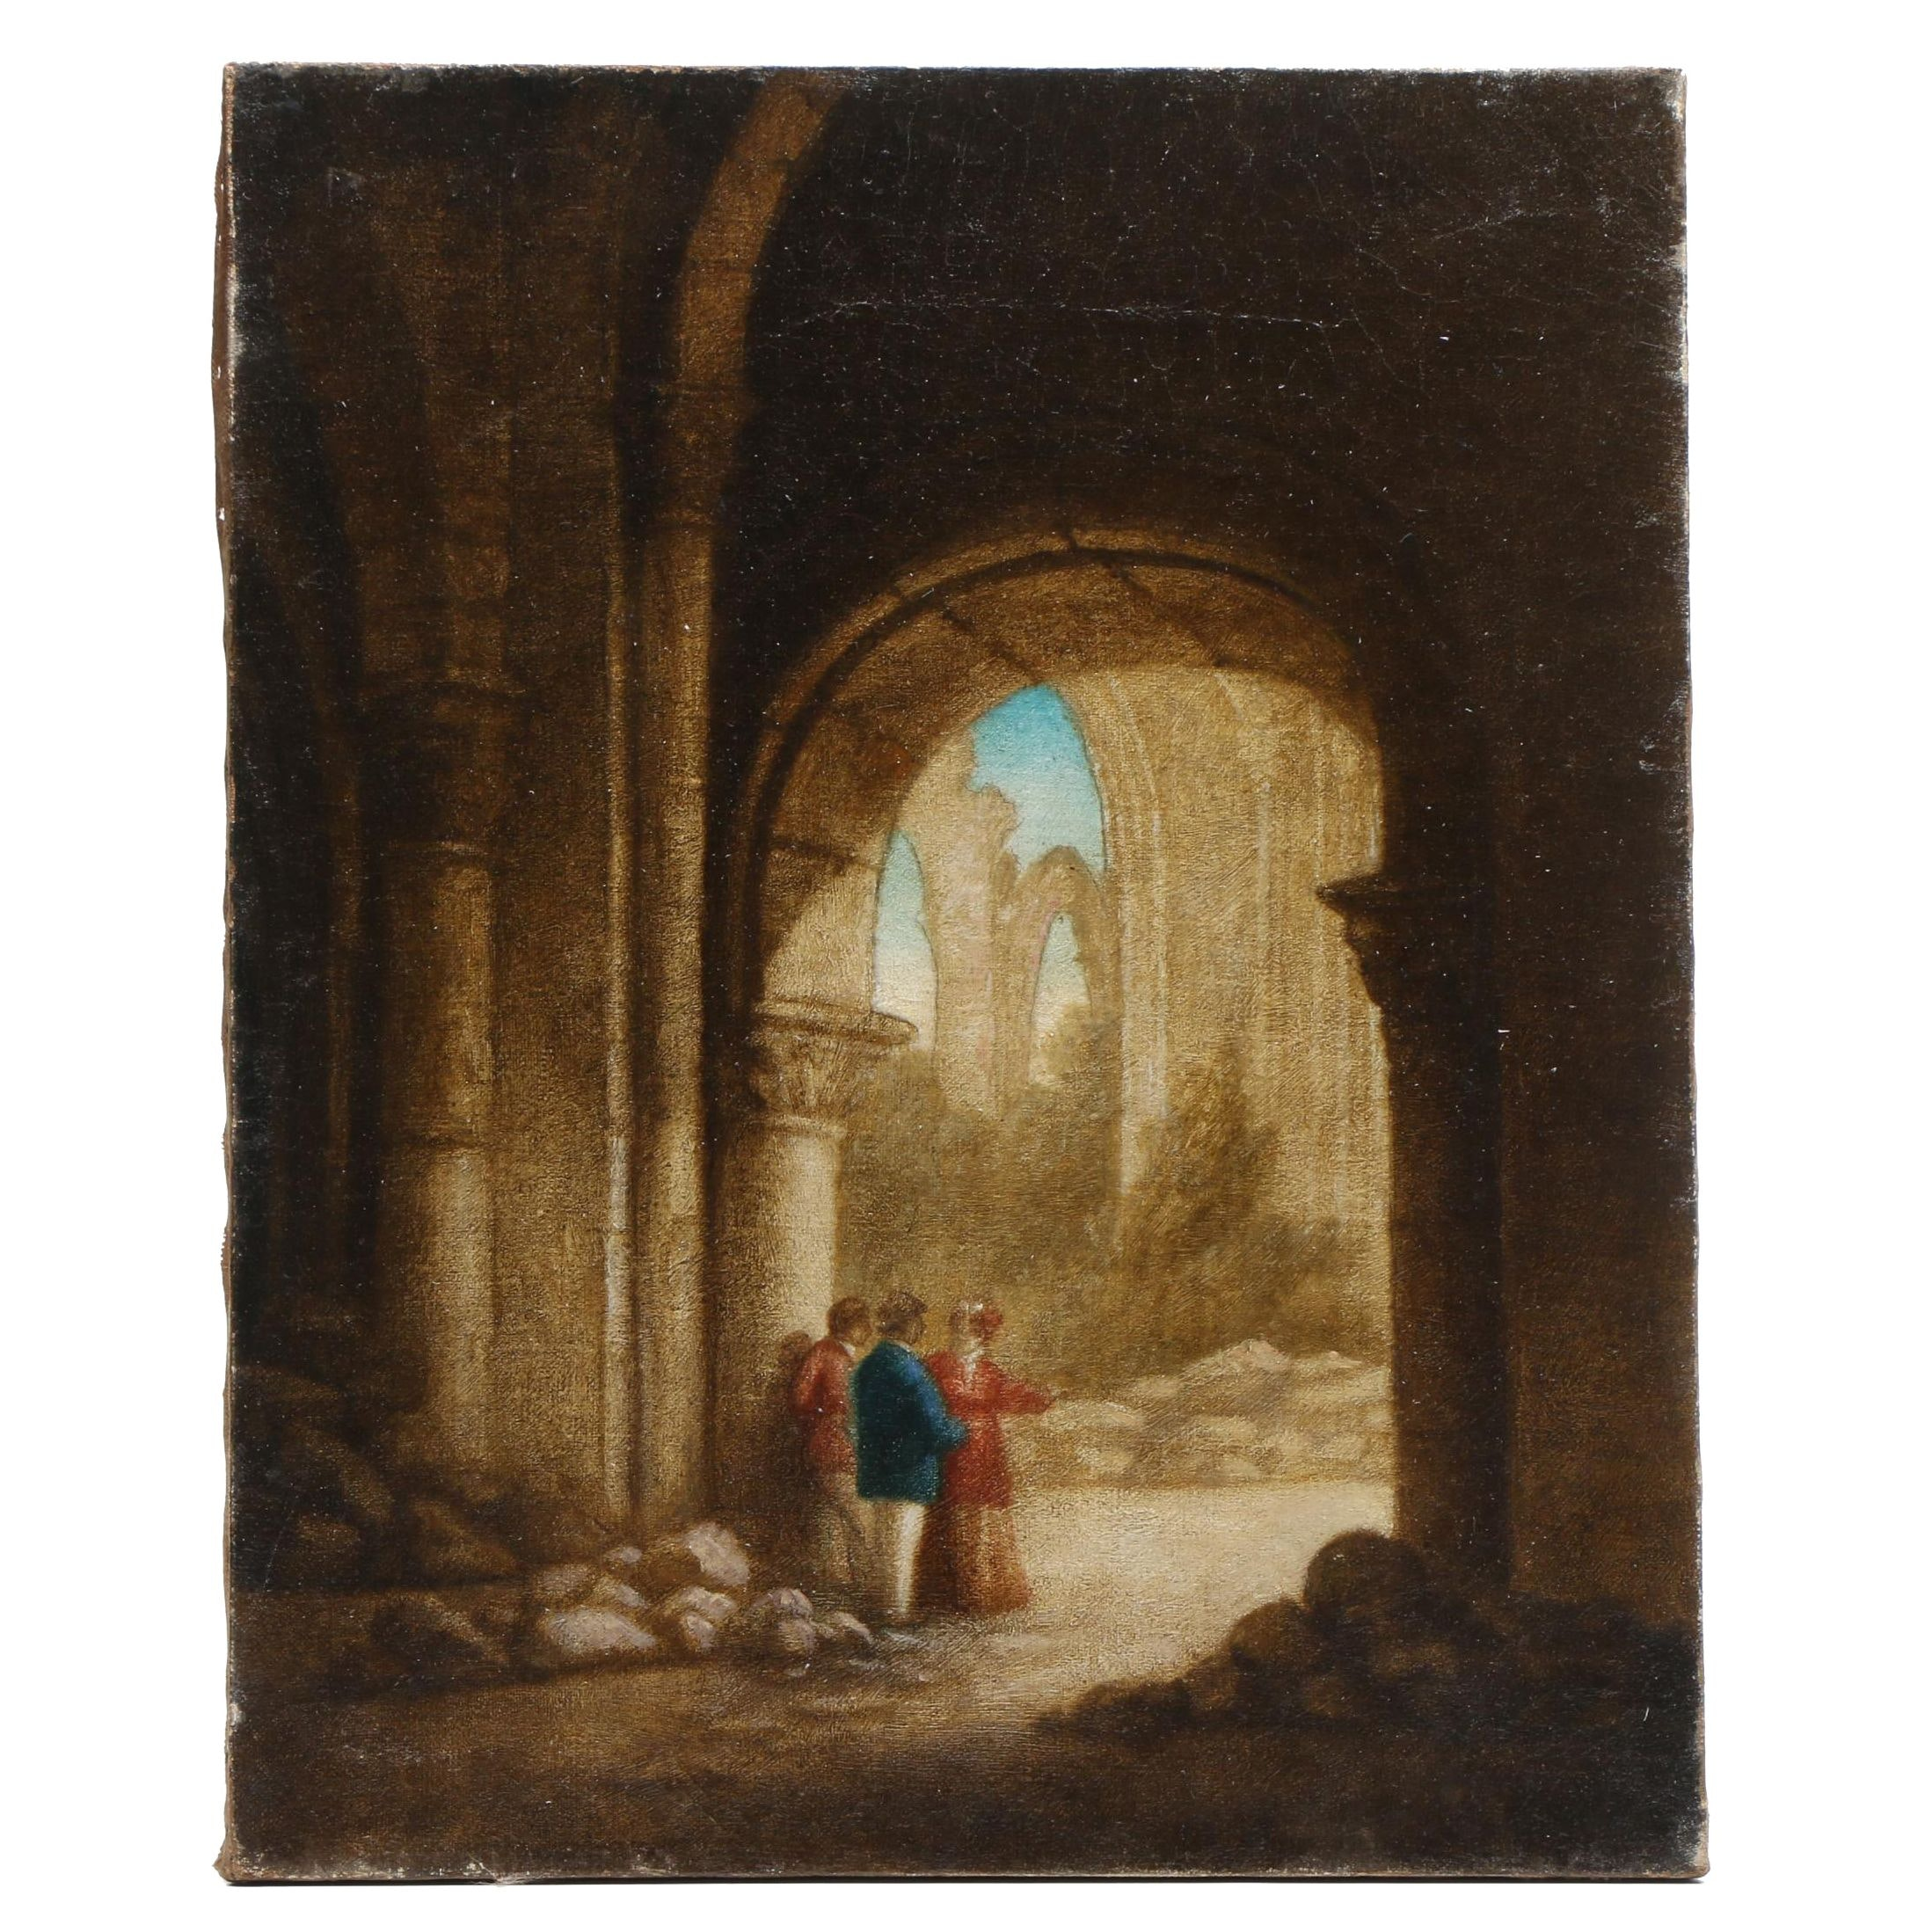 Oil Painting of Architectural Ruins with Figures